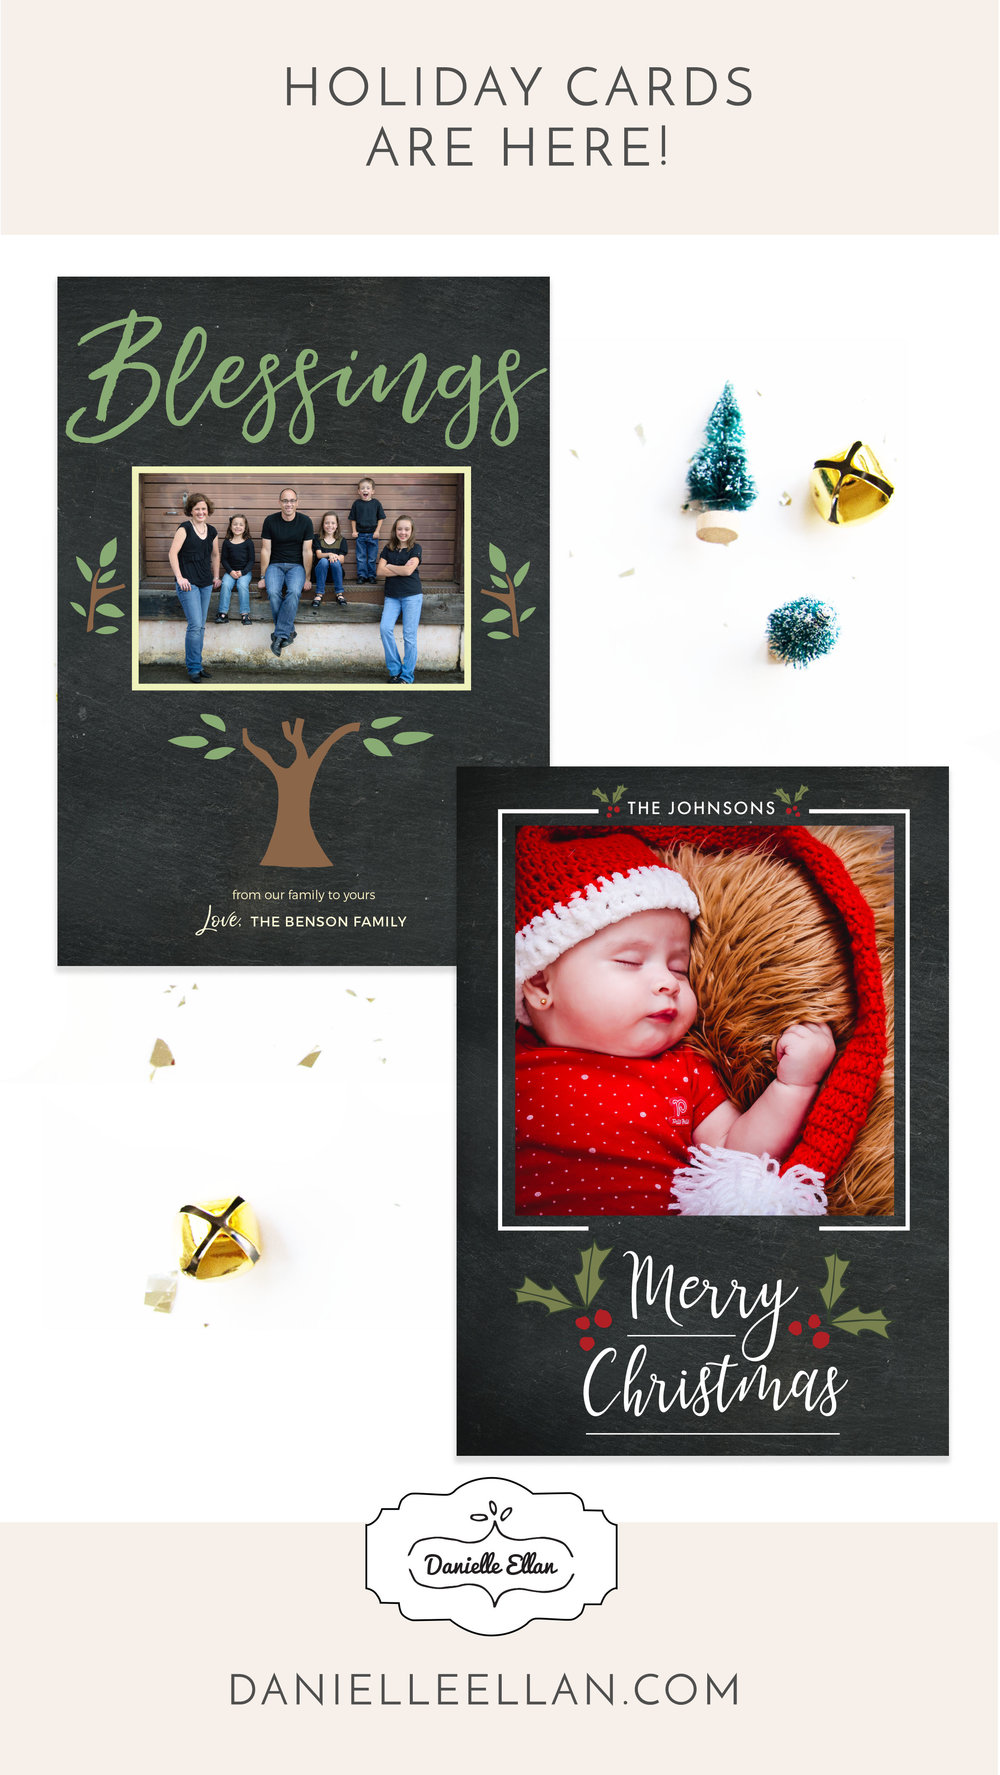 Holiday cards by Danielle Ellan